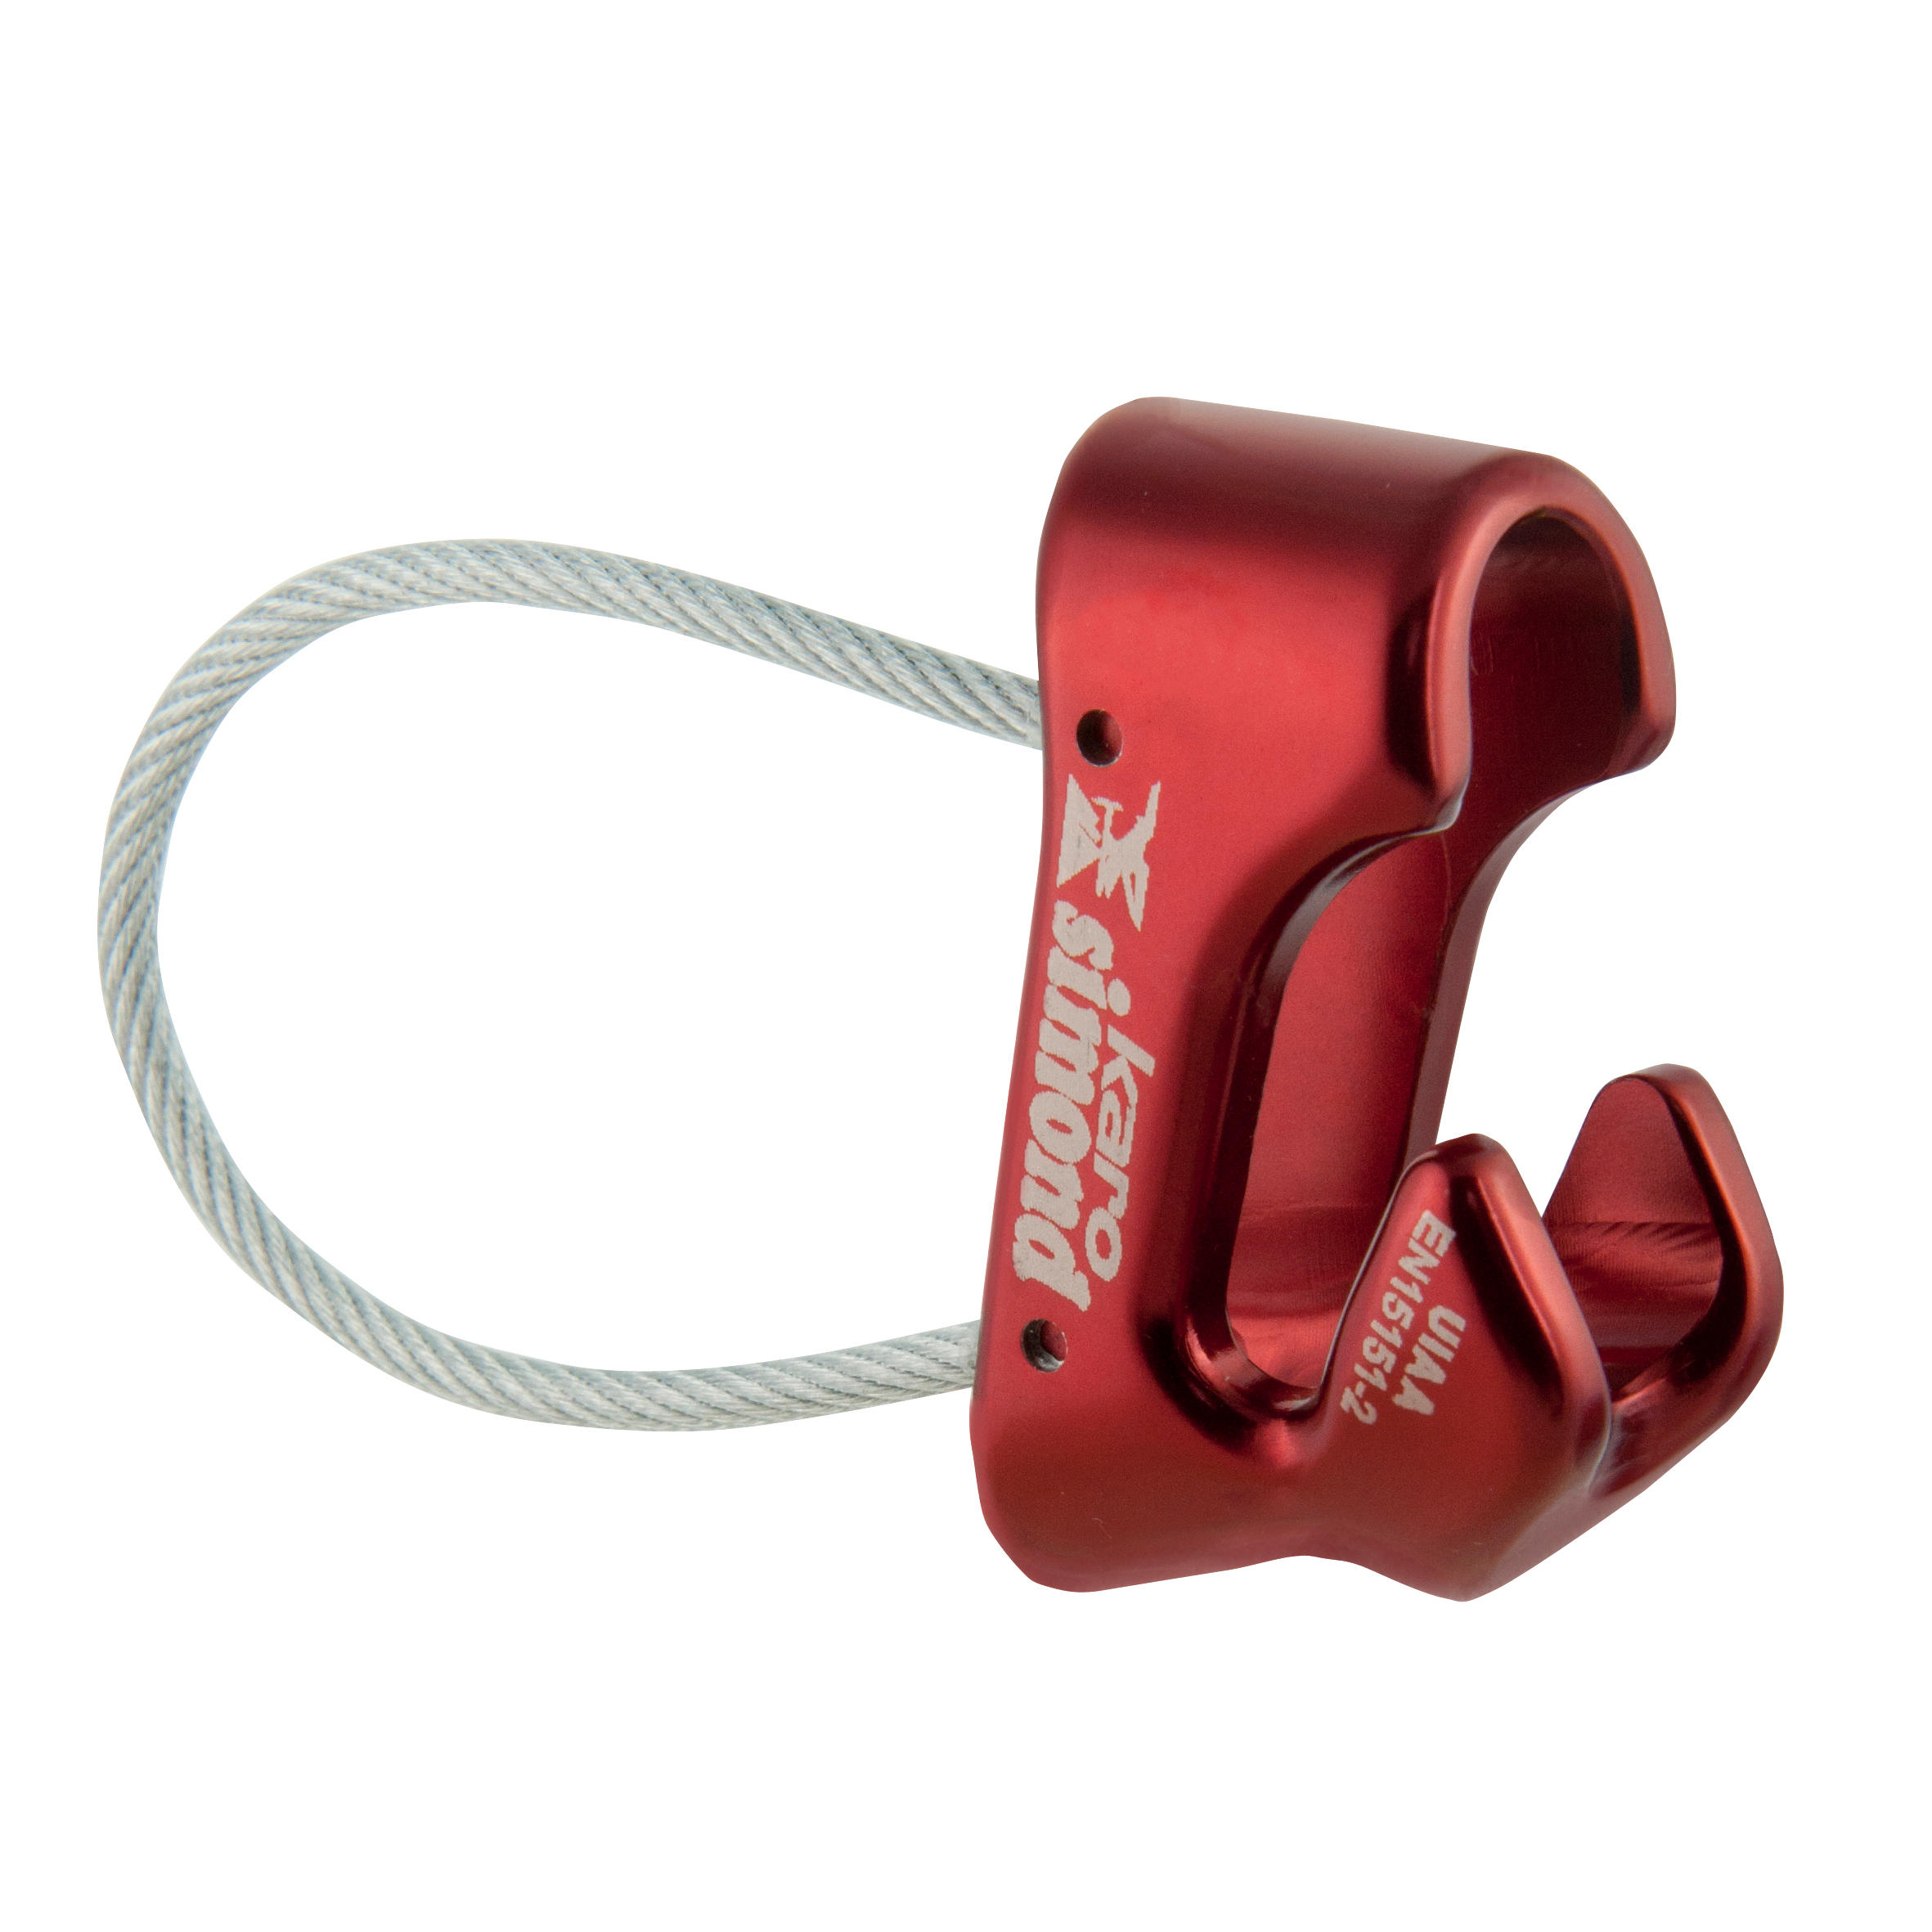 Karo Belay Device - Red